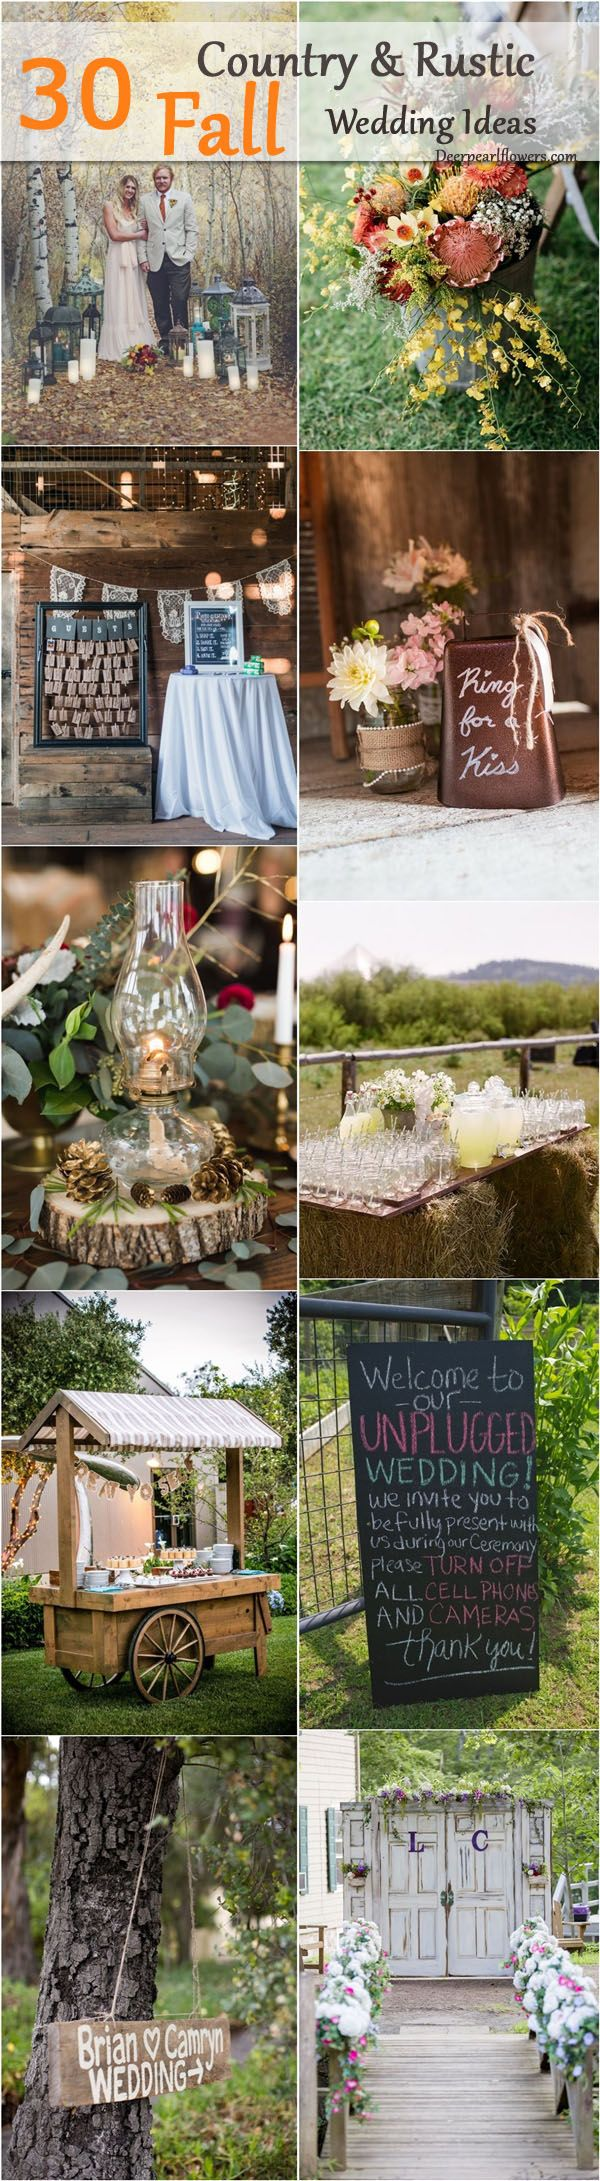 wedding ideas country theme 30 fall amp country rustic wedding theme ideas rustic 27838